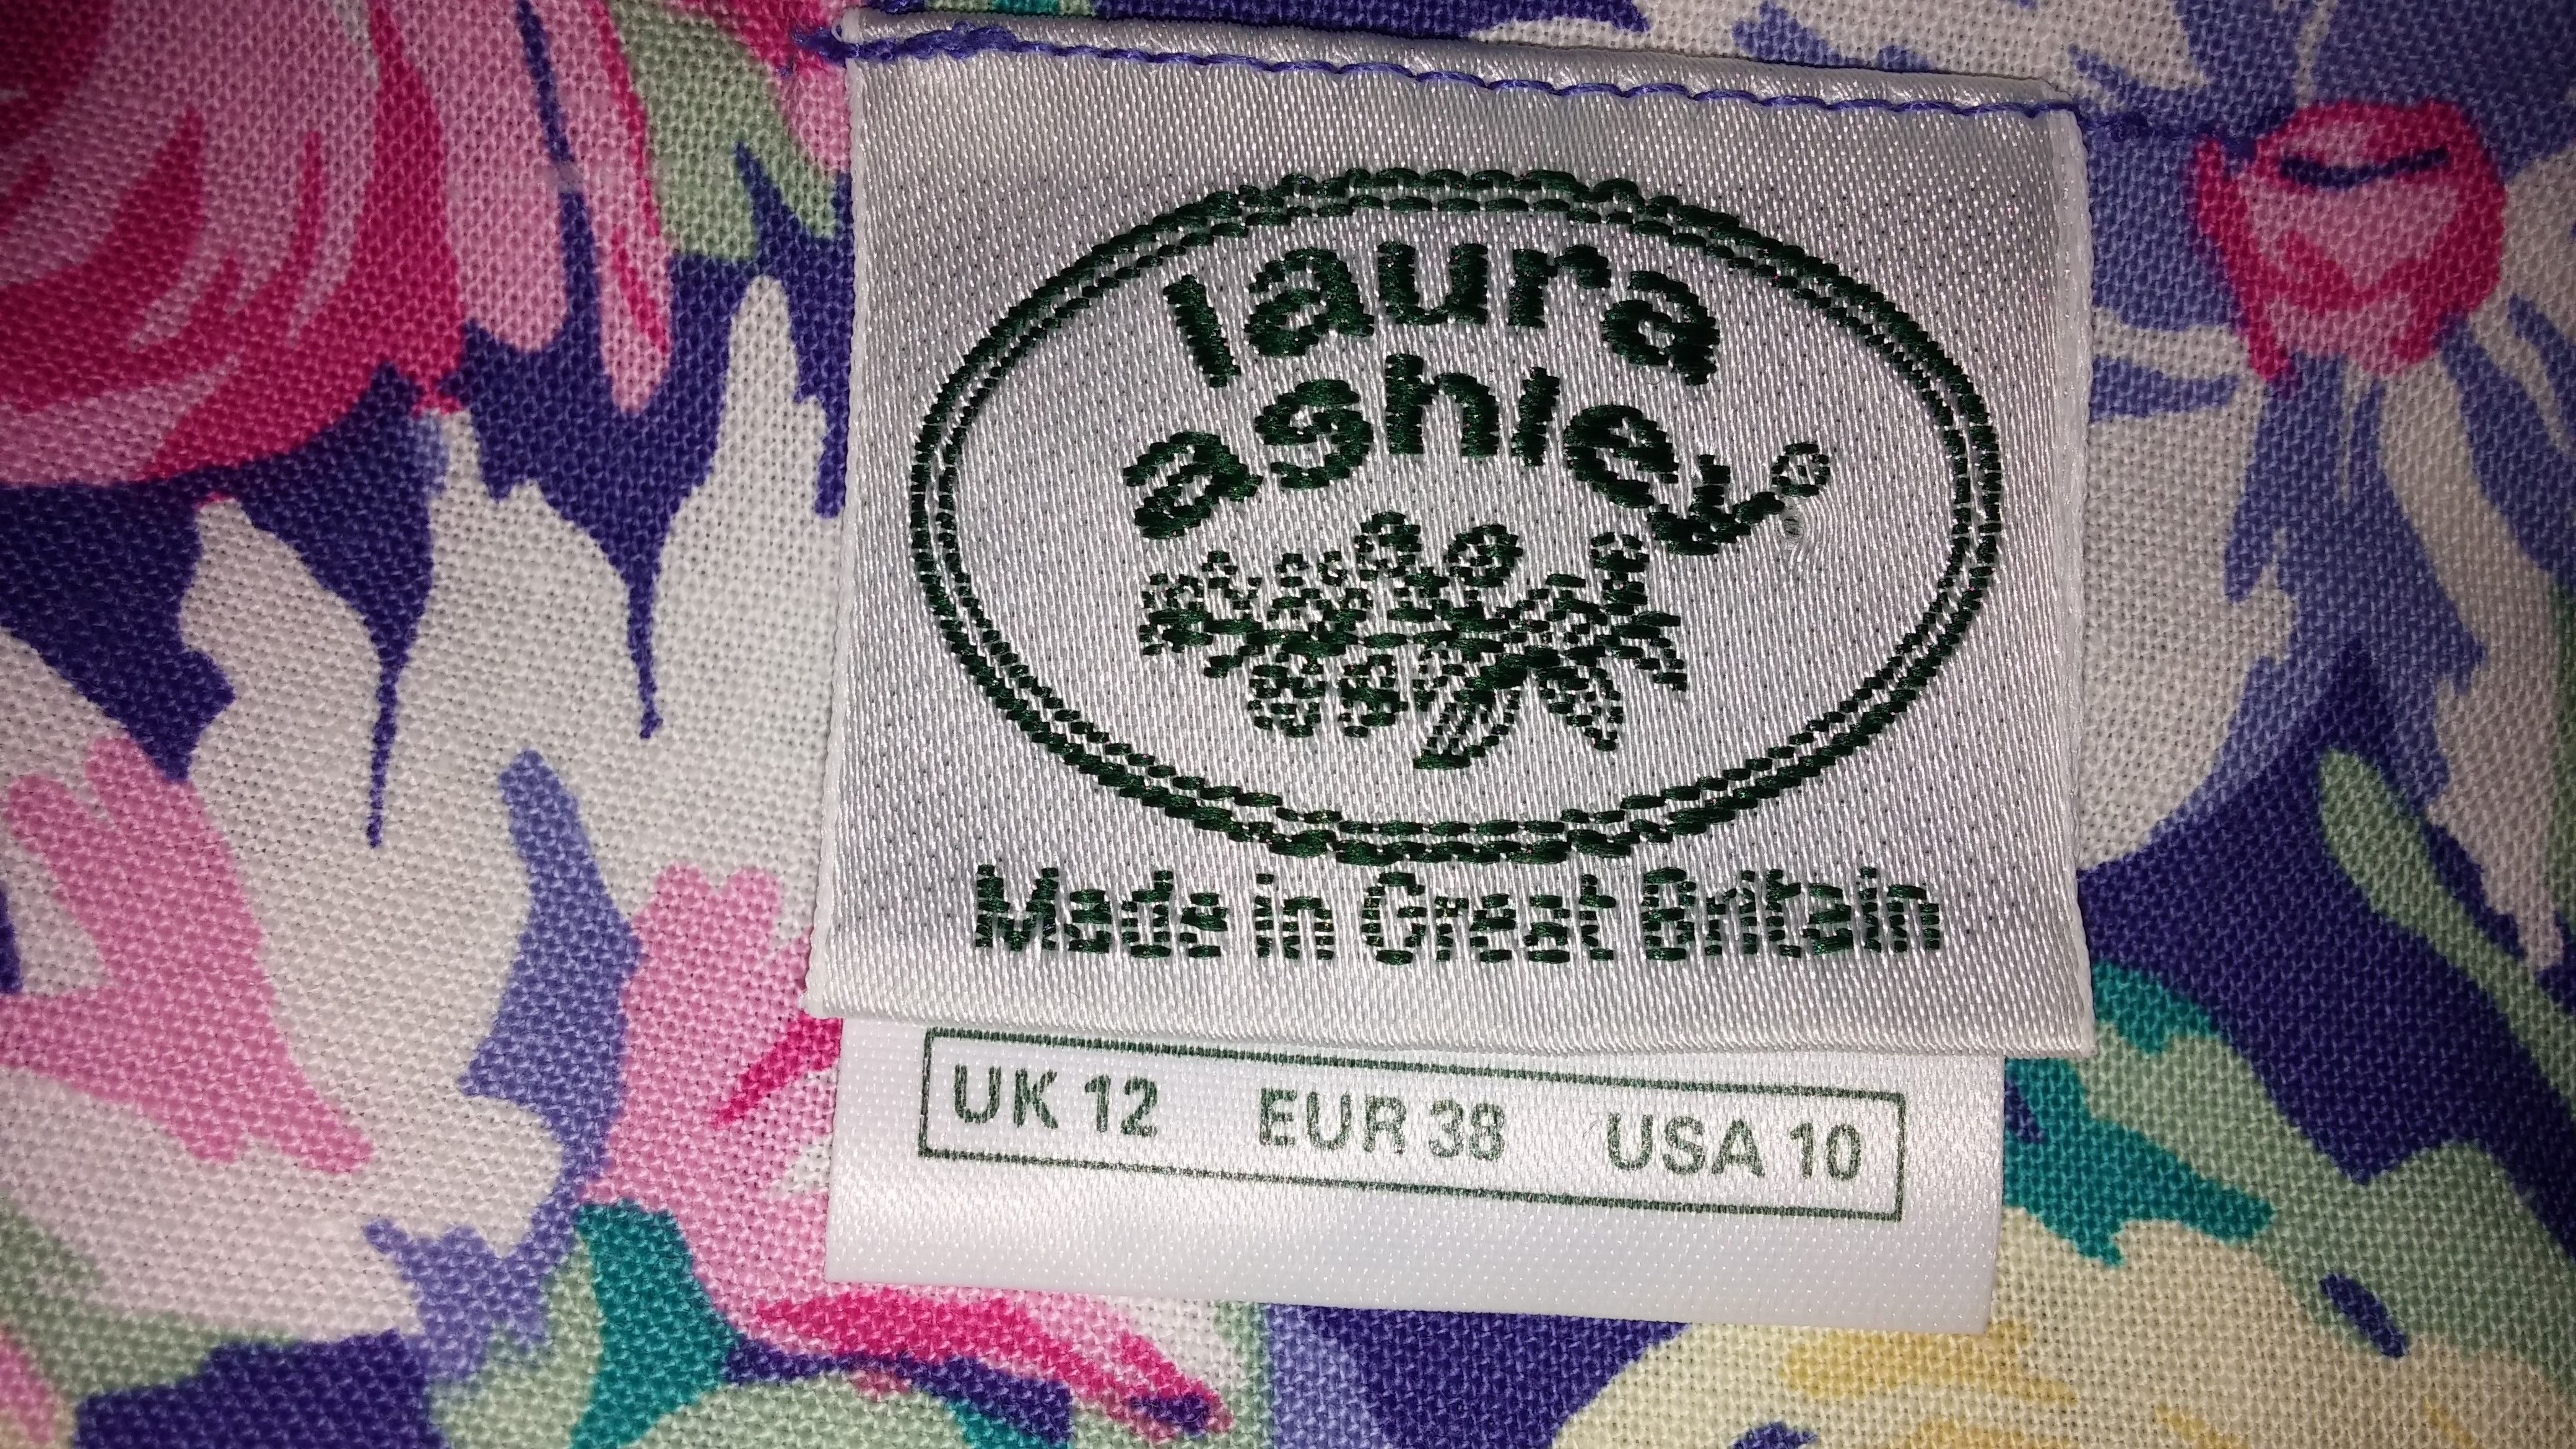 Laura Ashley Made In Great Britain 1980s Vintage Outfits Clothing Labels Online Vintage